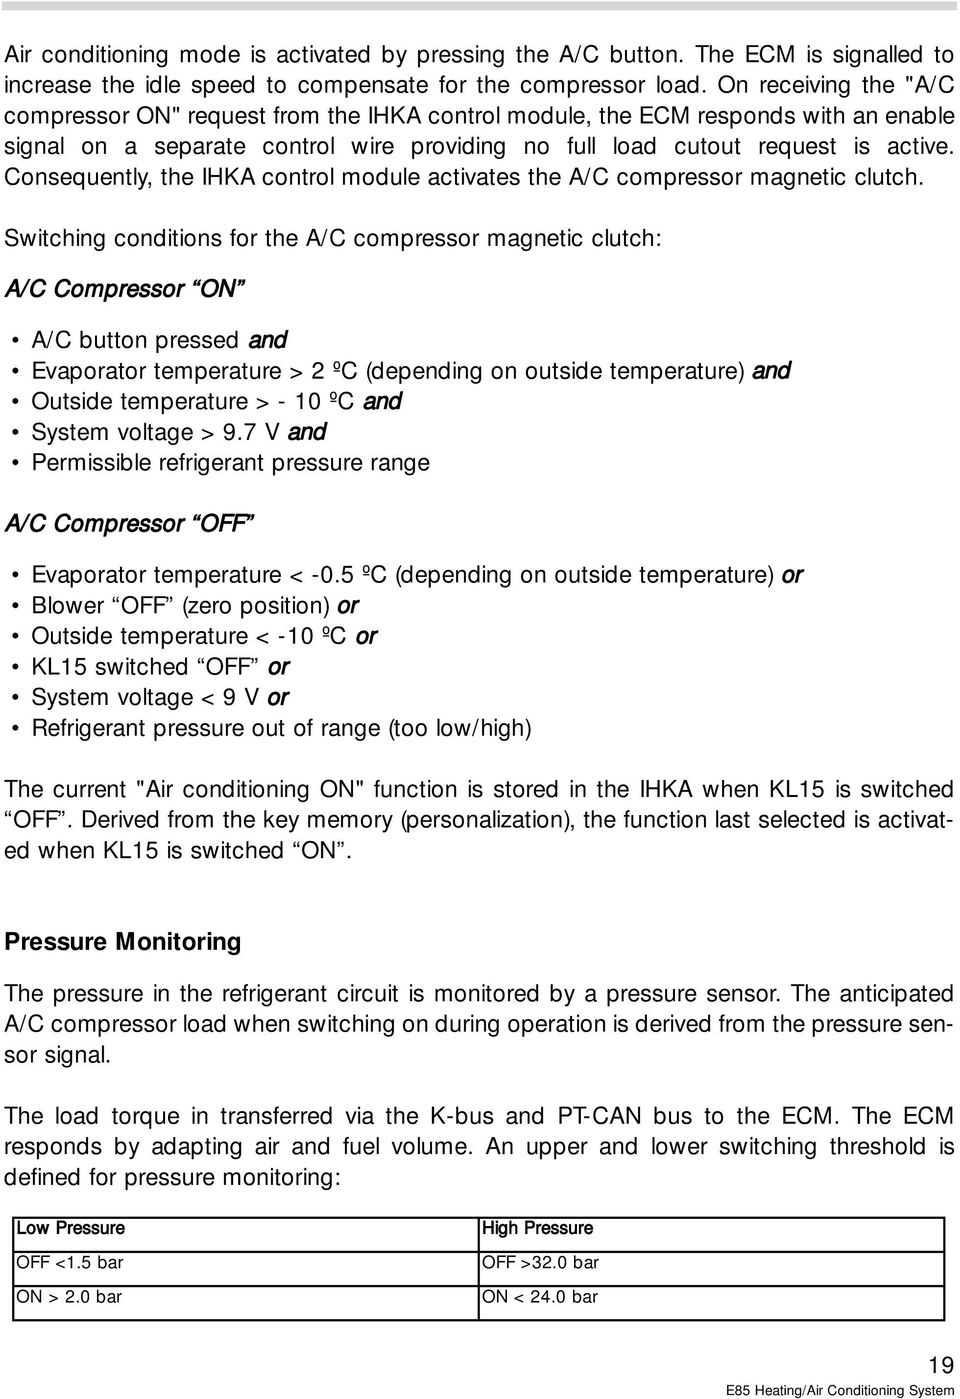 E85 Heating / Air Conditioning System - PDF